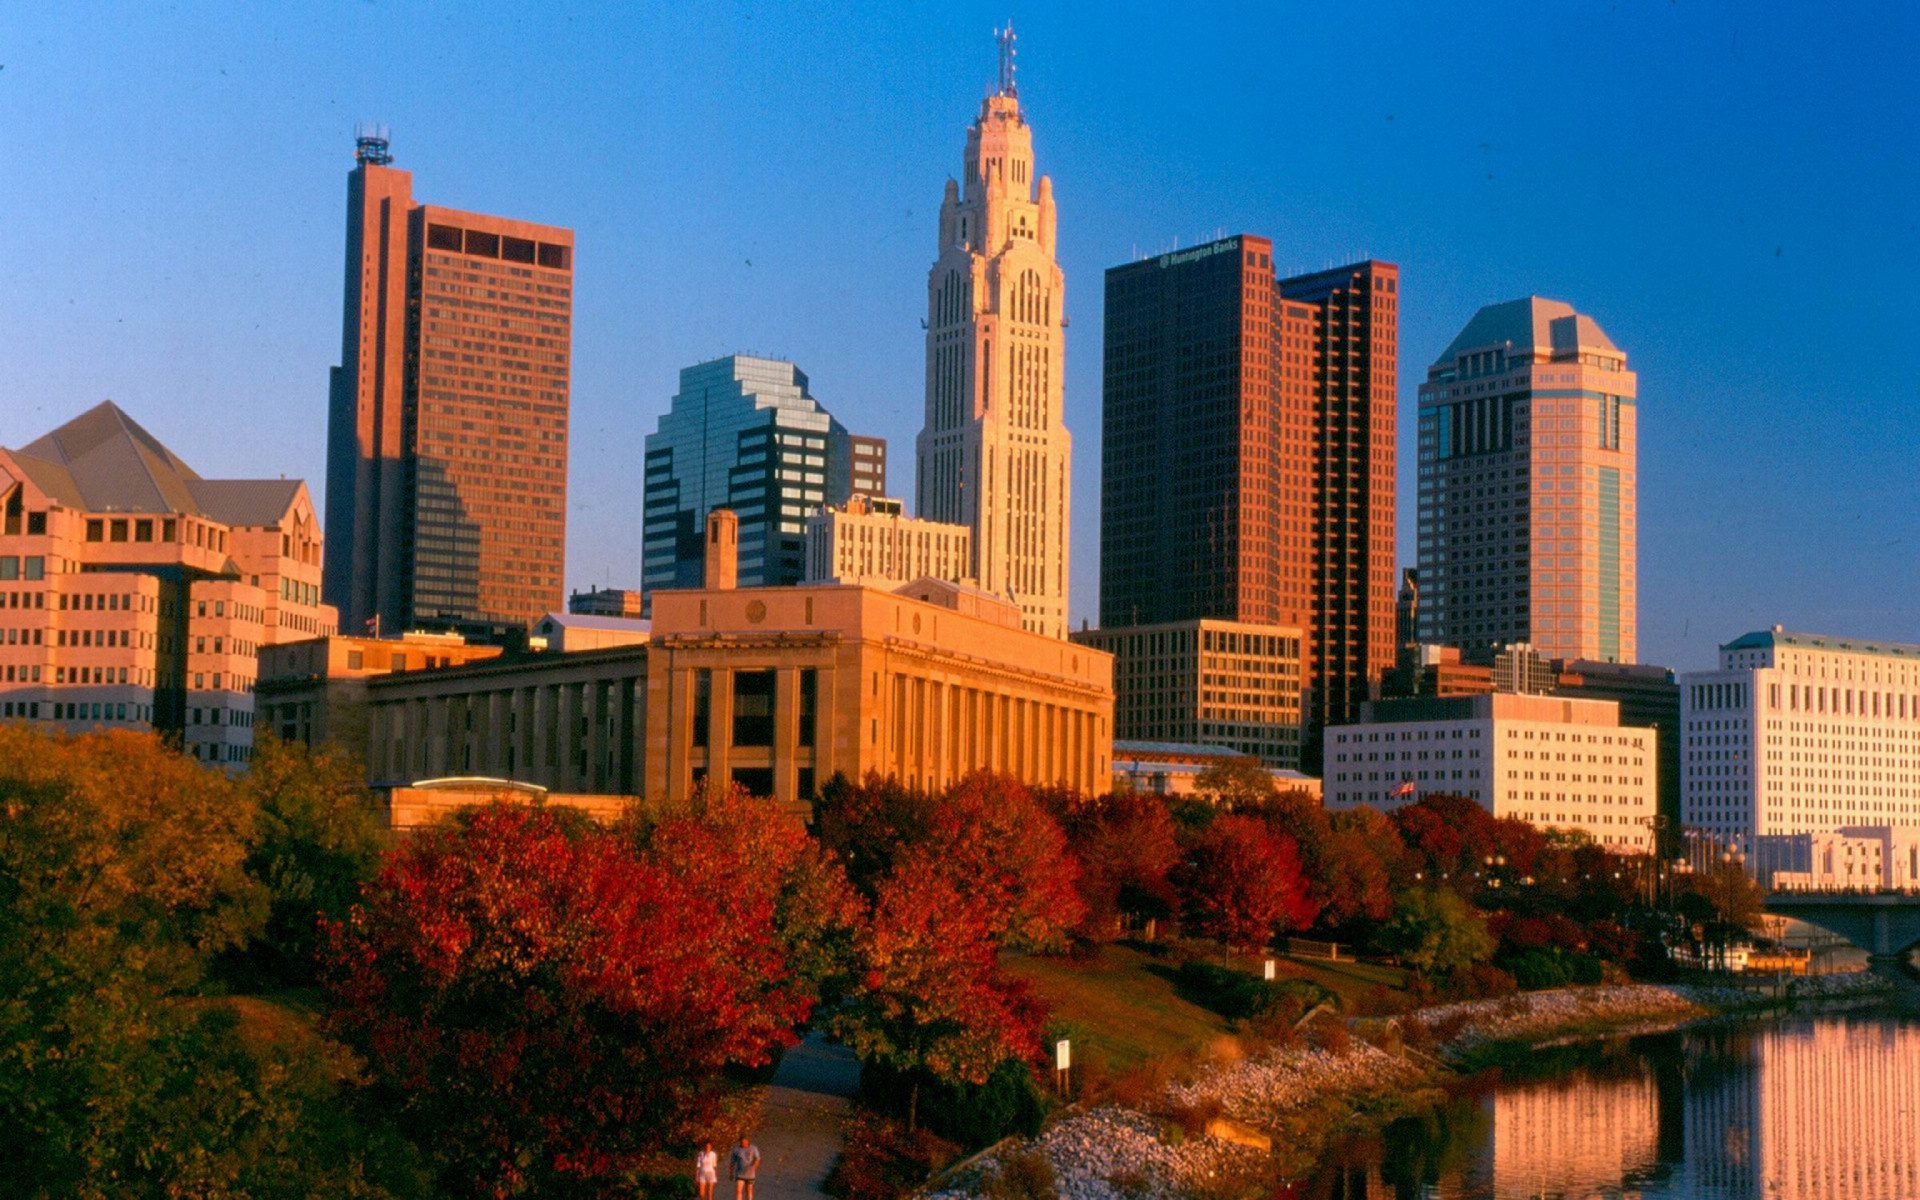 columbus ohio wallpaper - photo #13